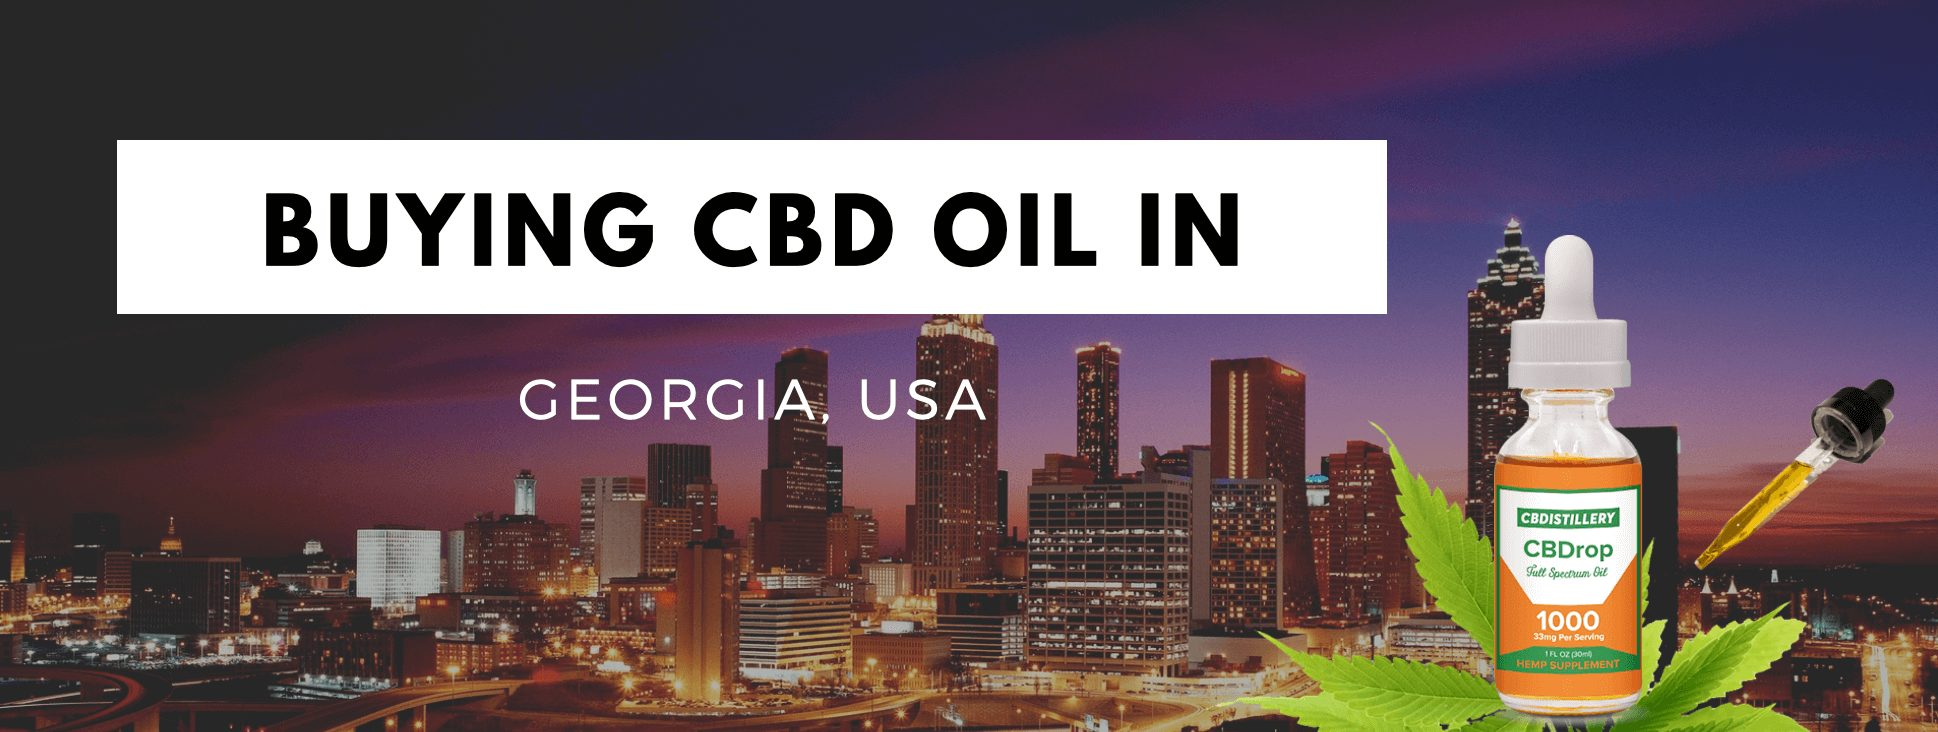 CBD oil Georgia